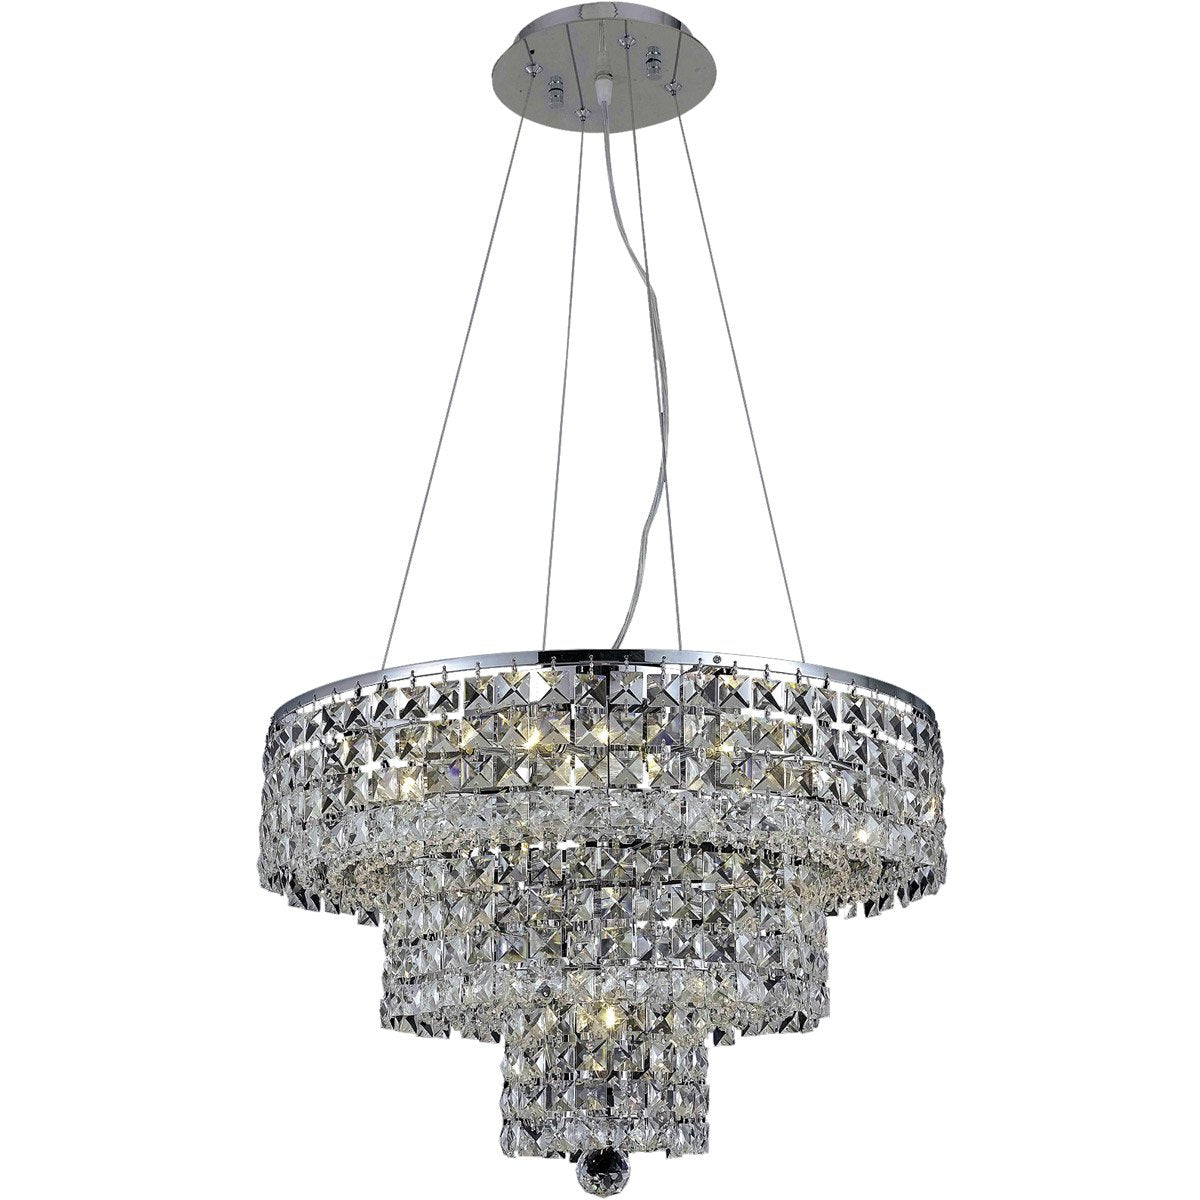 Maxime 20 Crystal Chandelier With 9 Lights - Chrome Finish And Clear / Royal Cut Crystal Chandelier